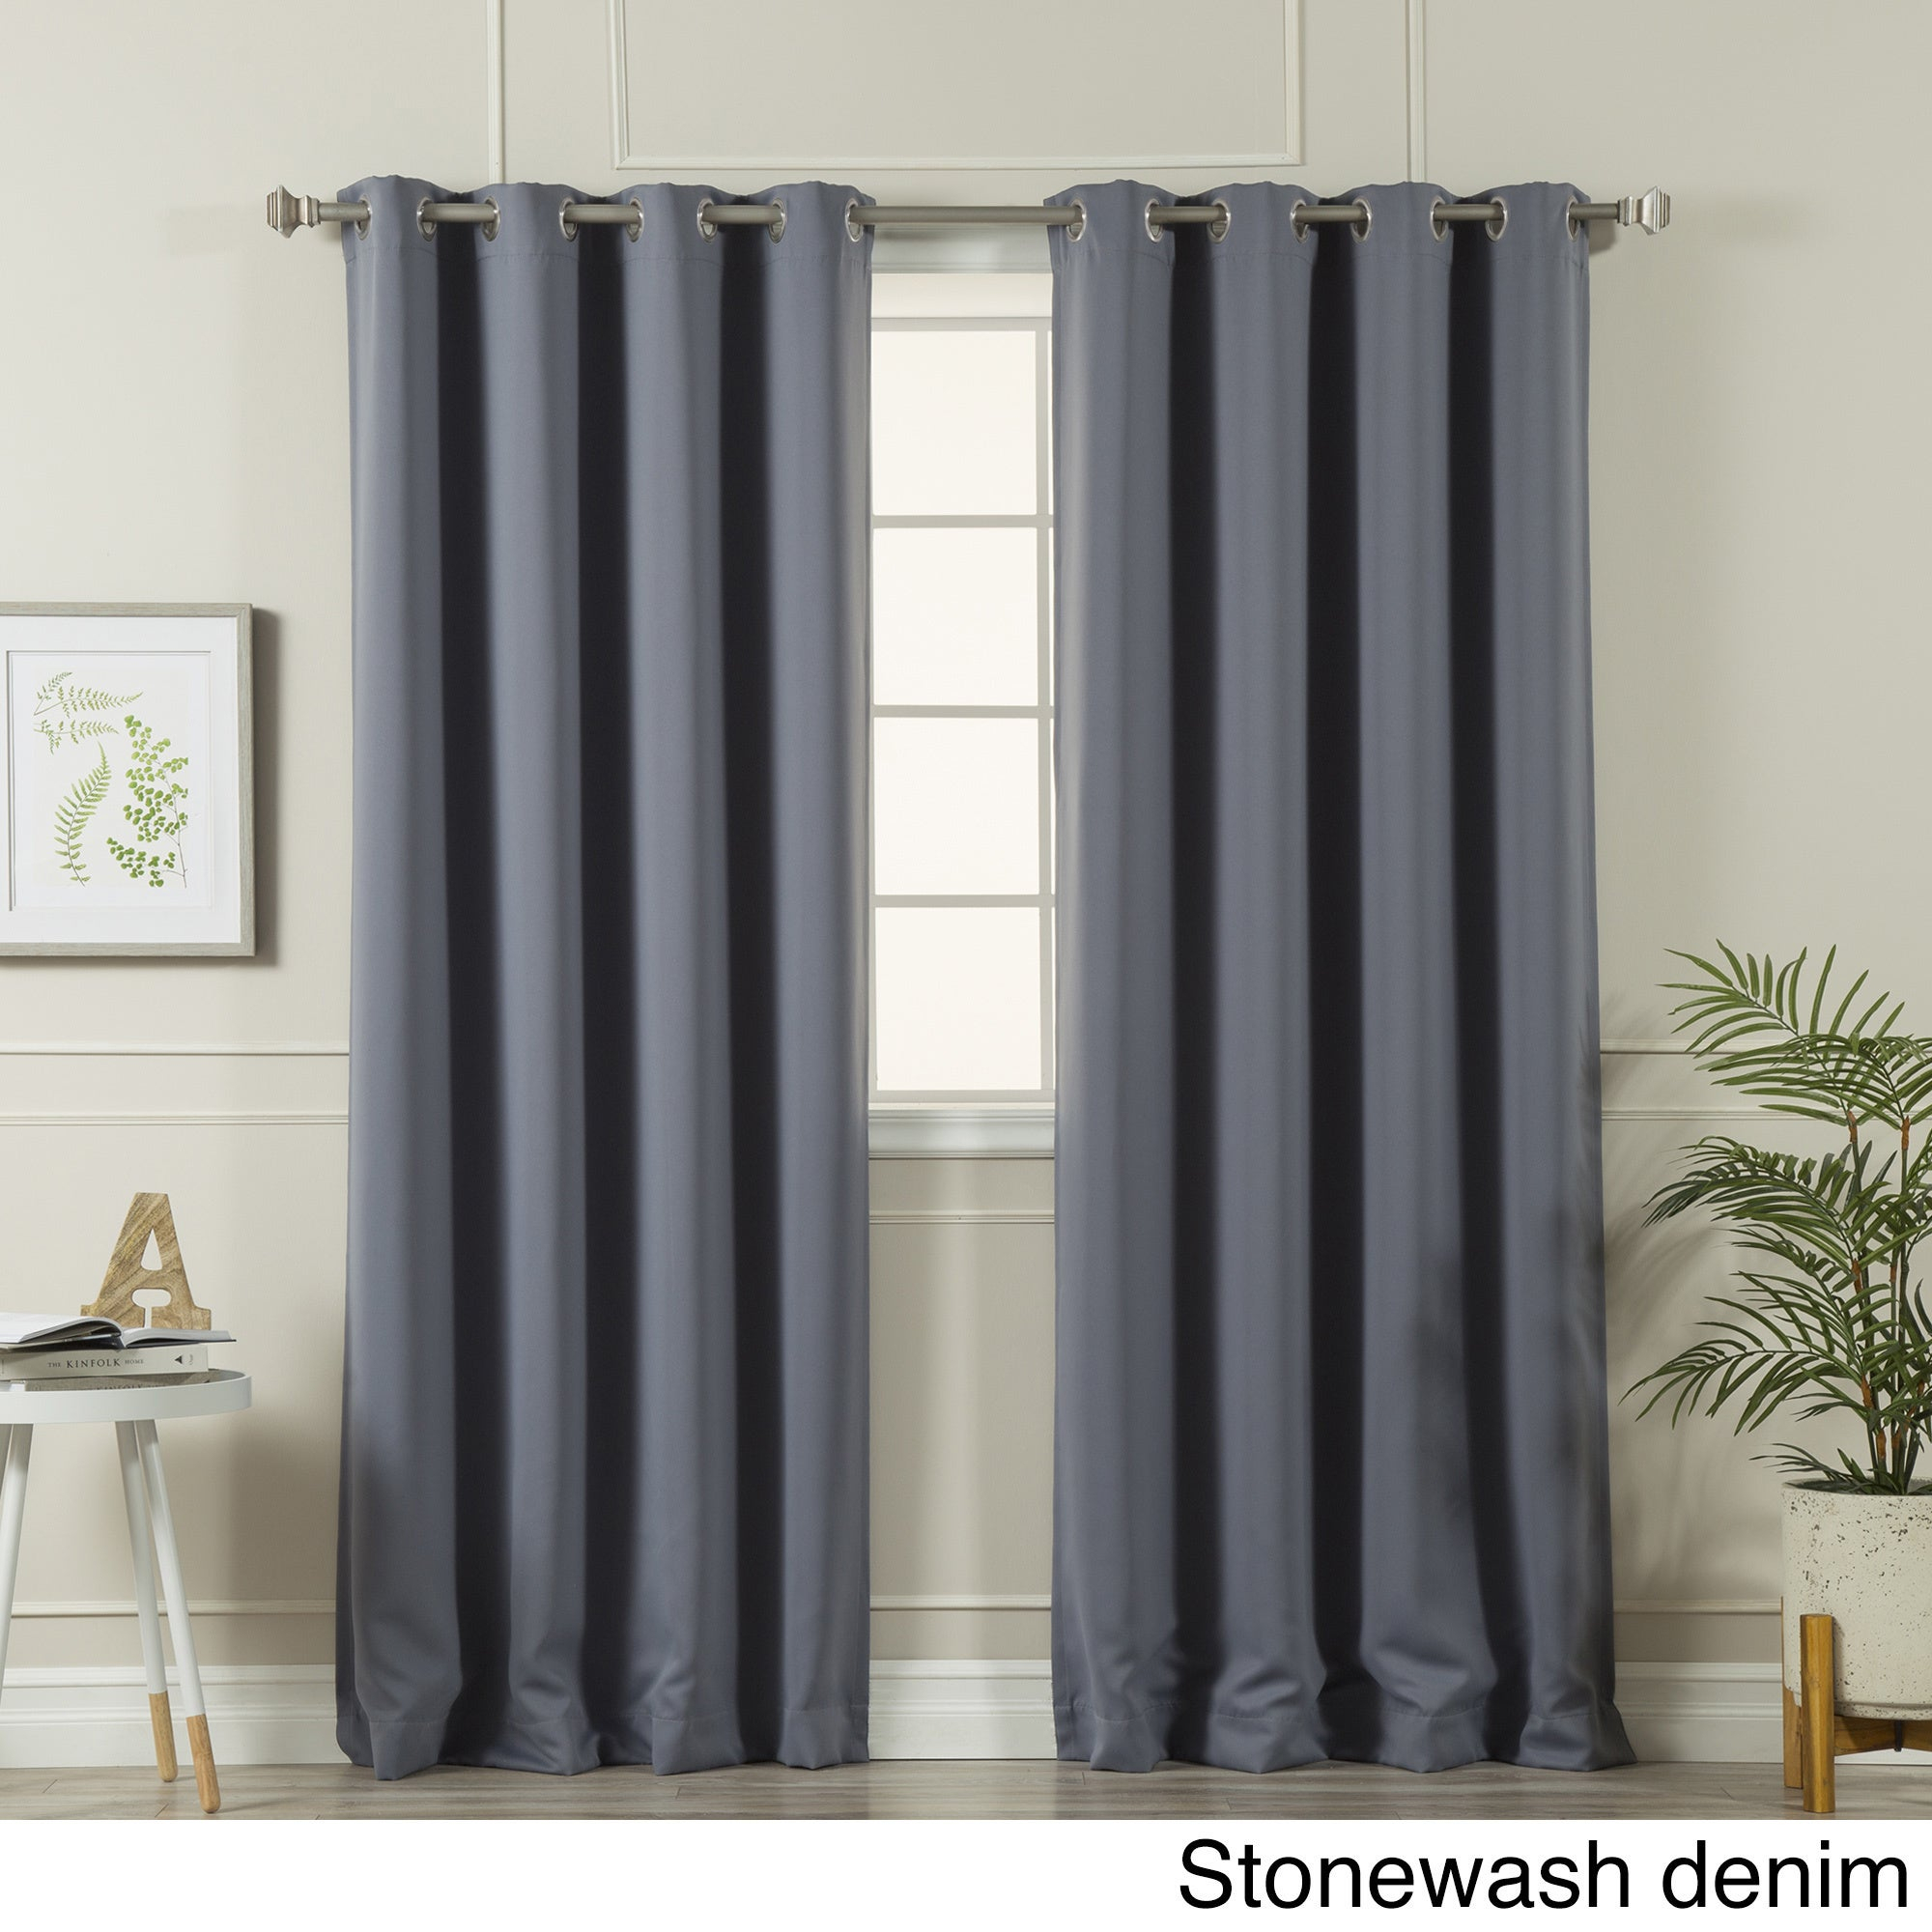 Aurora Home Silvertone Grommet Top Thermal Insulated Blackout Curtain Panel Pair Within Silvertone Grommet Thermal Insulated Blackout Curtain Panel Pairs (View 5 of 30)